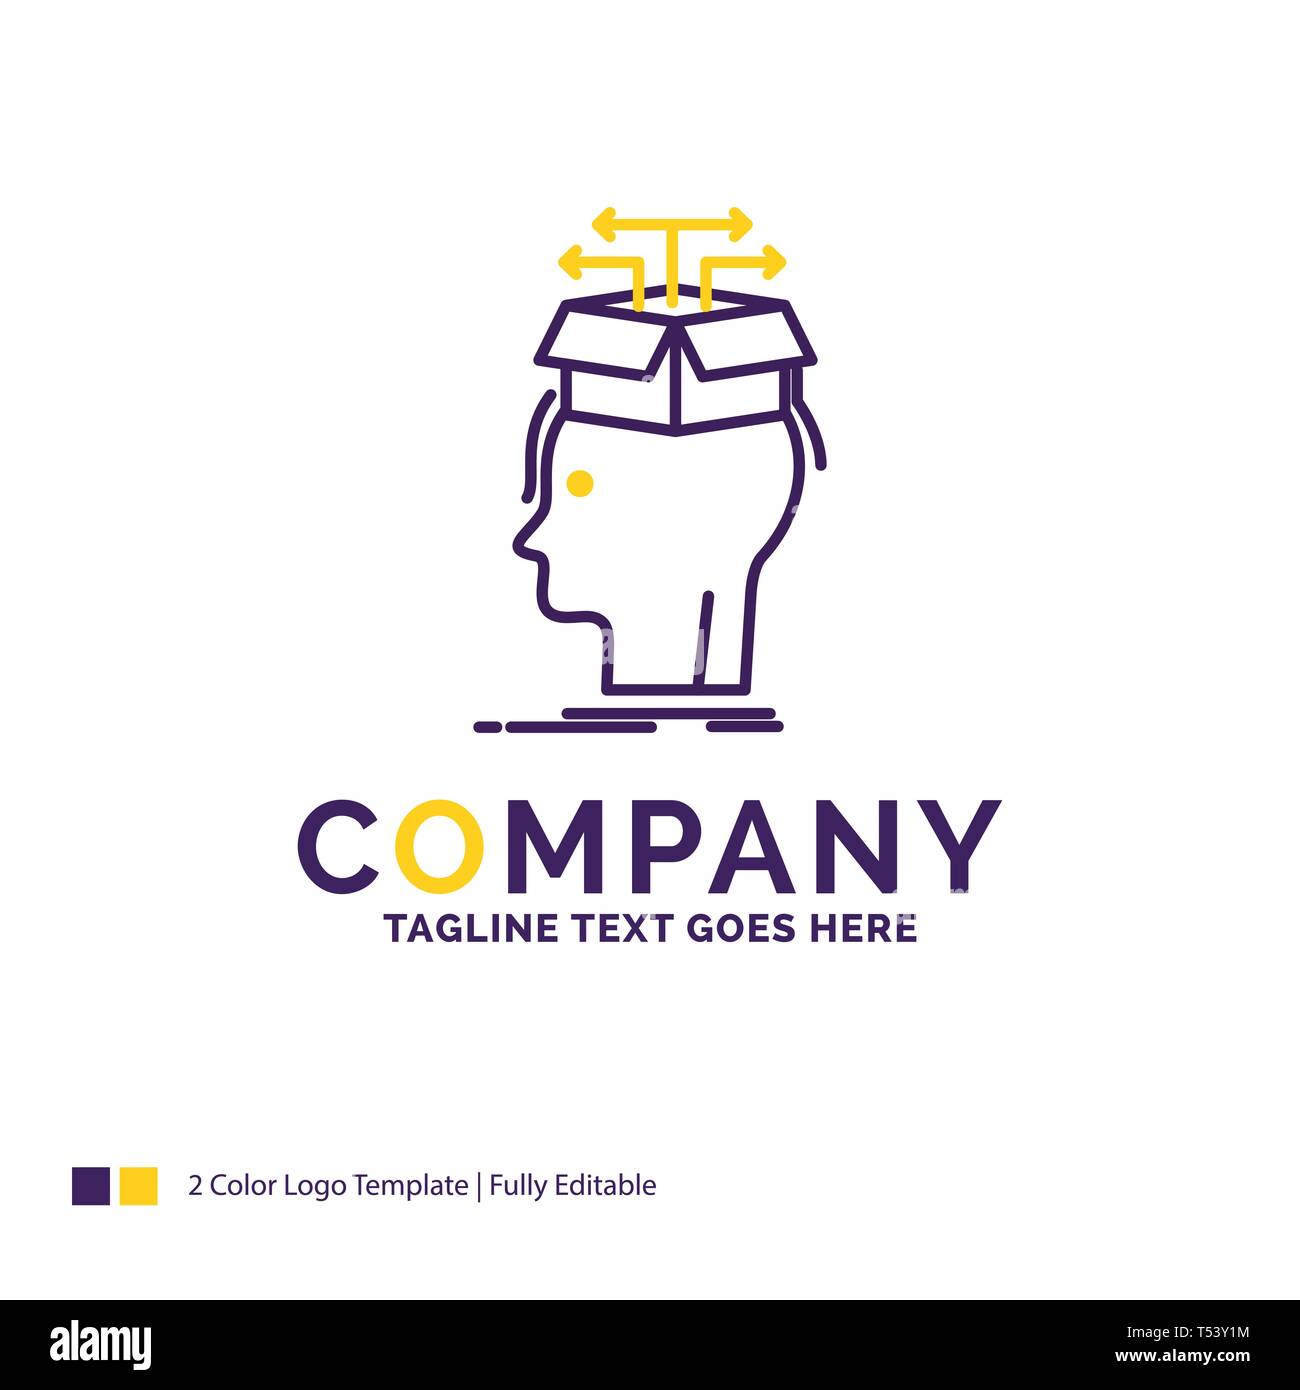 Company Name Logo Design For Data Extraction Head Knowledge Sharing Purple And Yellow Brand Name Design With Place For Tagline Creative Logo Tem Stock Vector Image Art Alamy